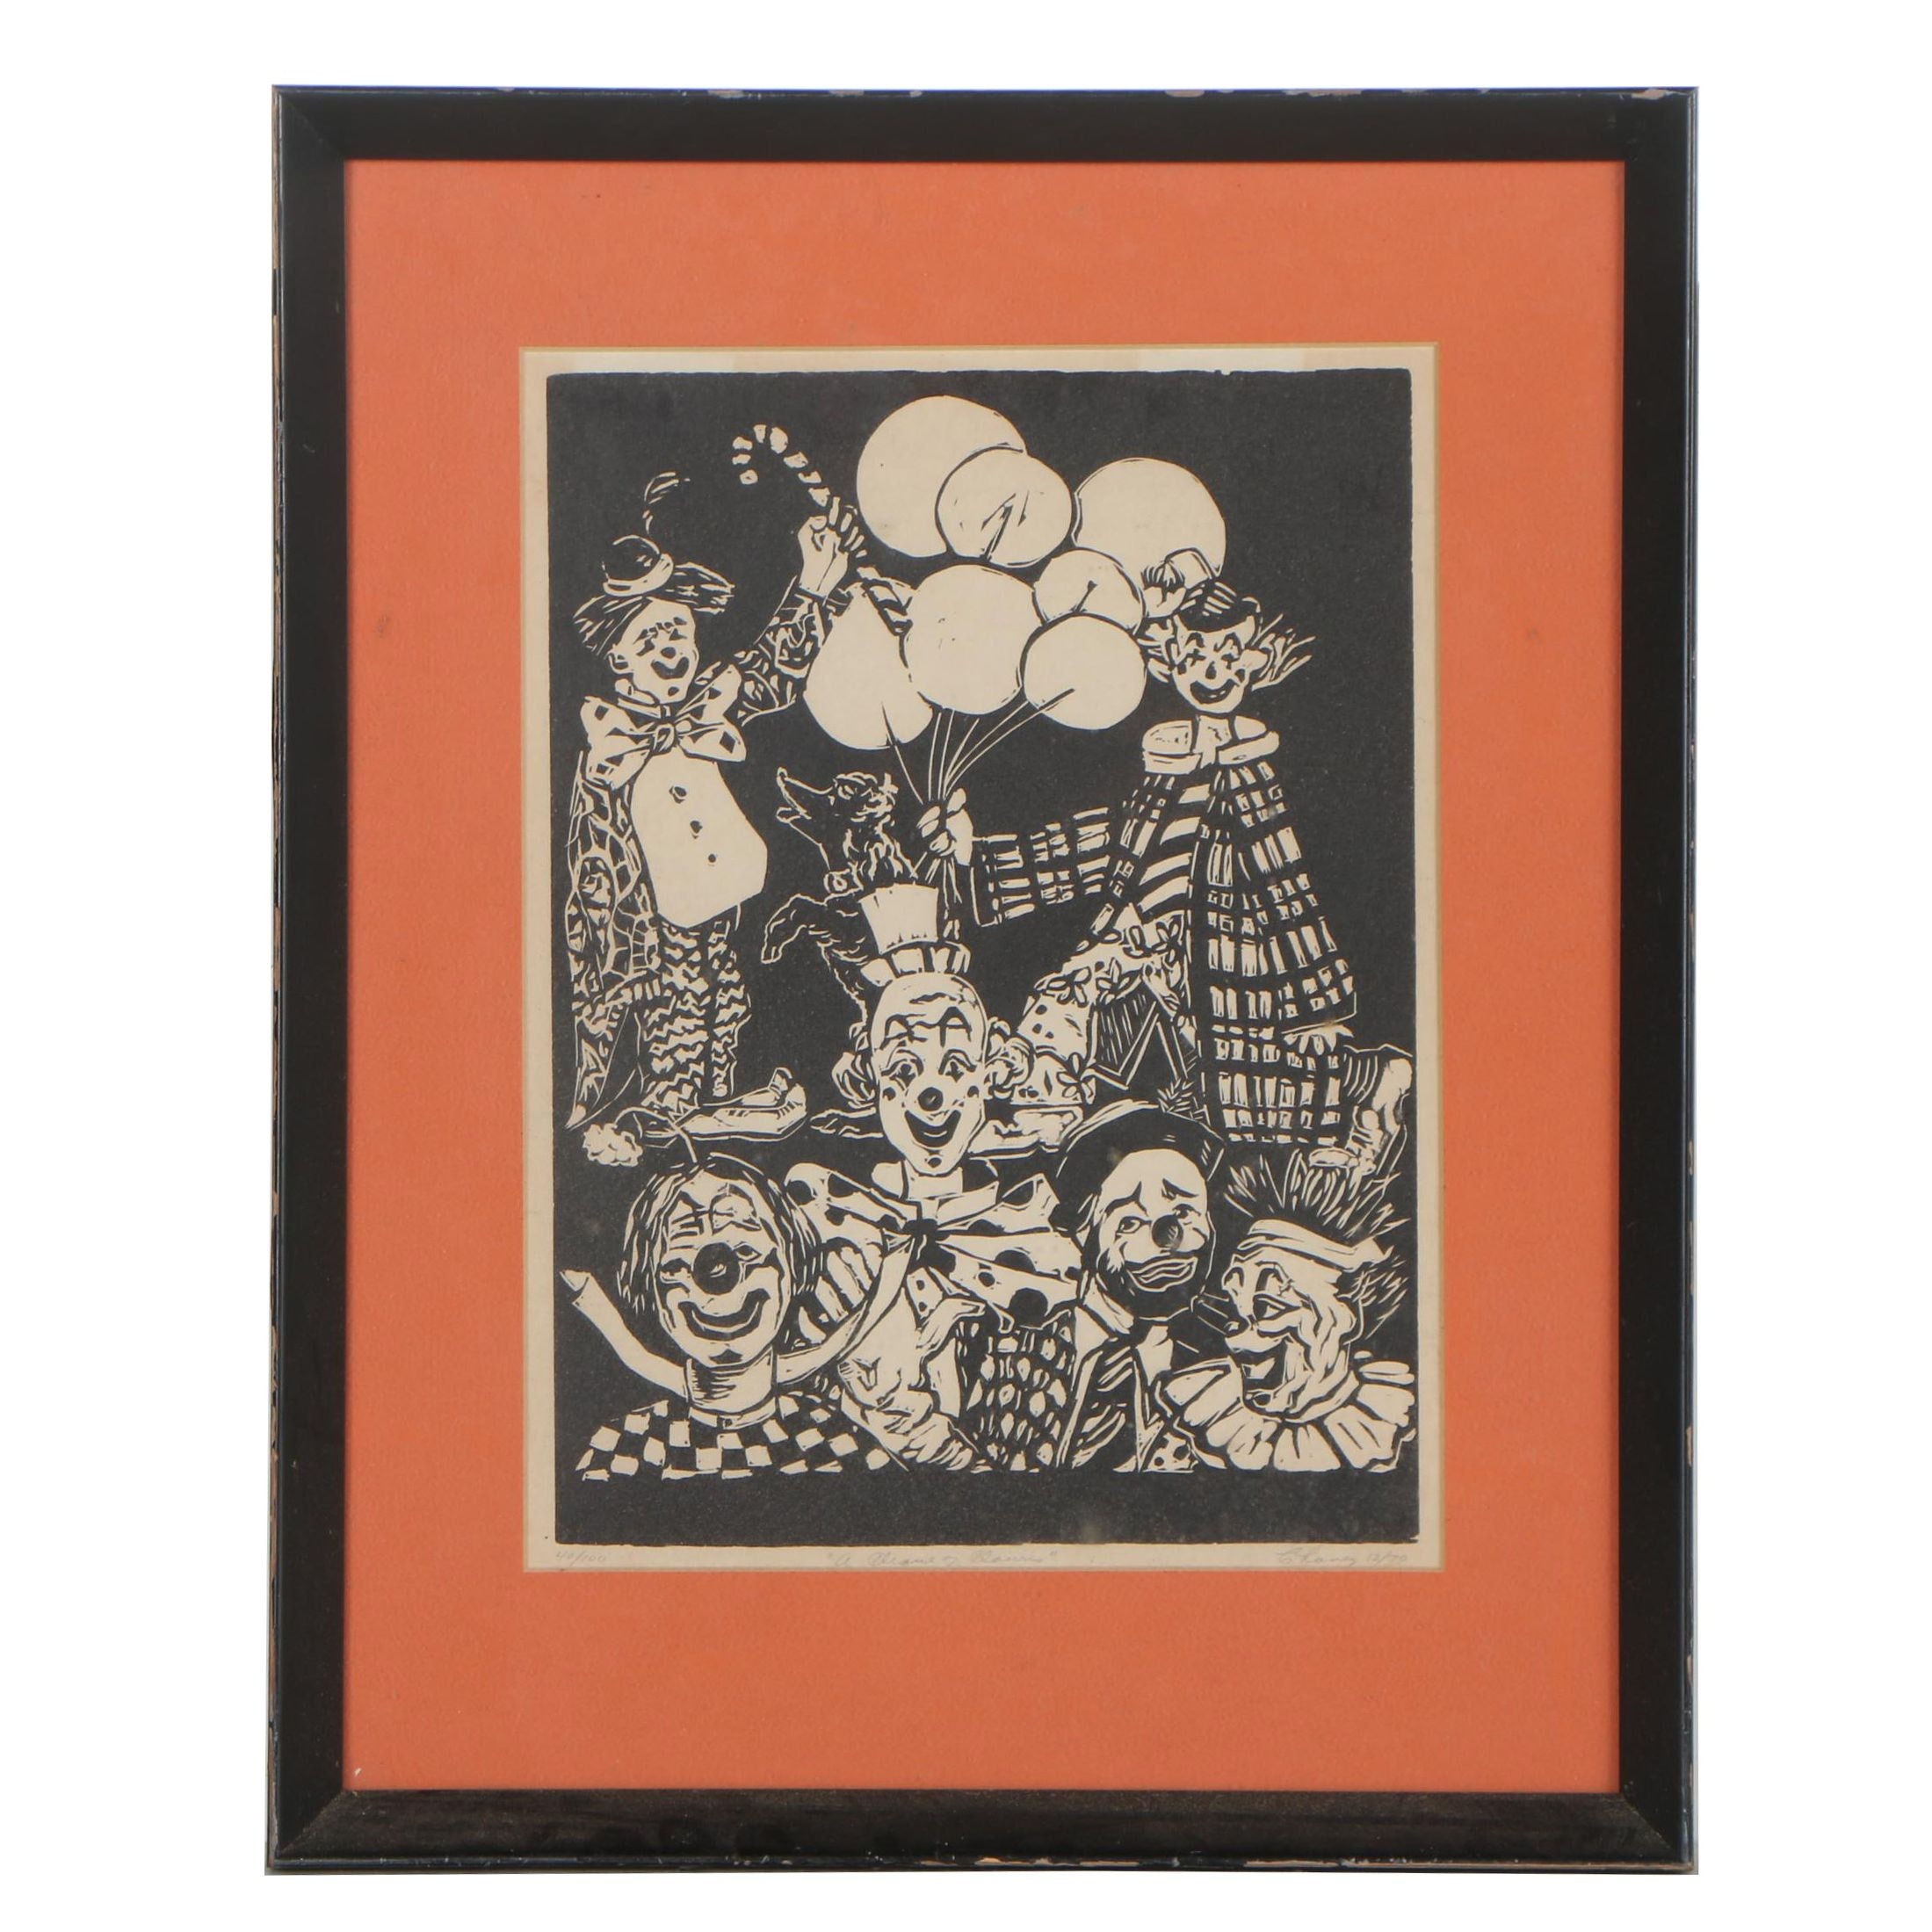 "Late 20th Century Woodblock Print ""A Clique of Clowns"""